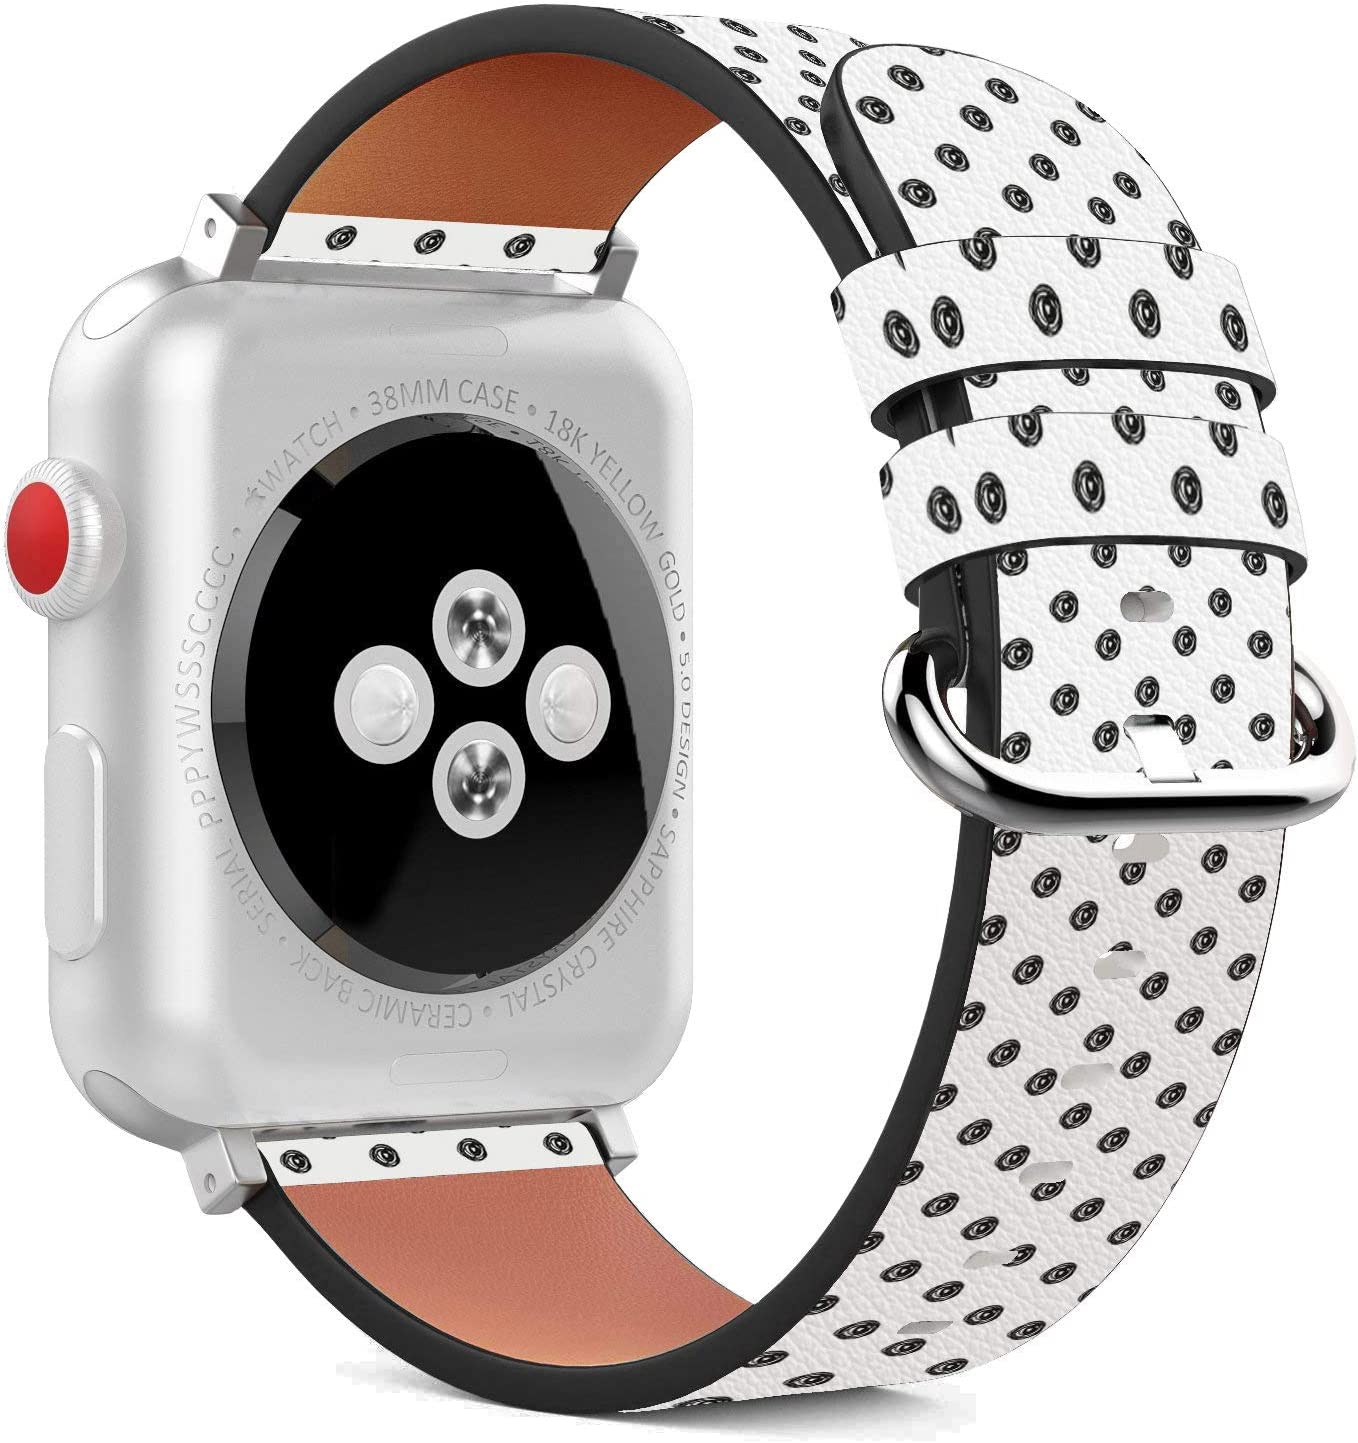 Compatible with Apple Watch - 38mm / 40mm (Serie 5,4,3,2,1) Leather Wristband Bracelet with Stainless Steel Clasp and Adapters - Black White Polka Dot